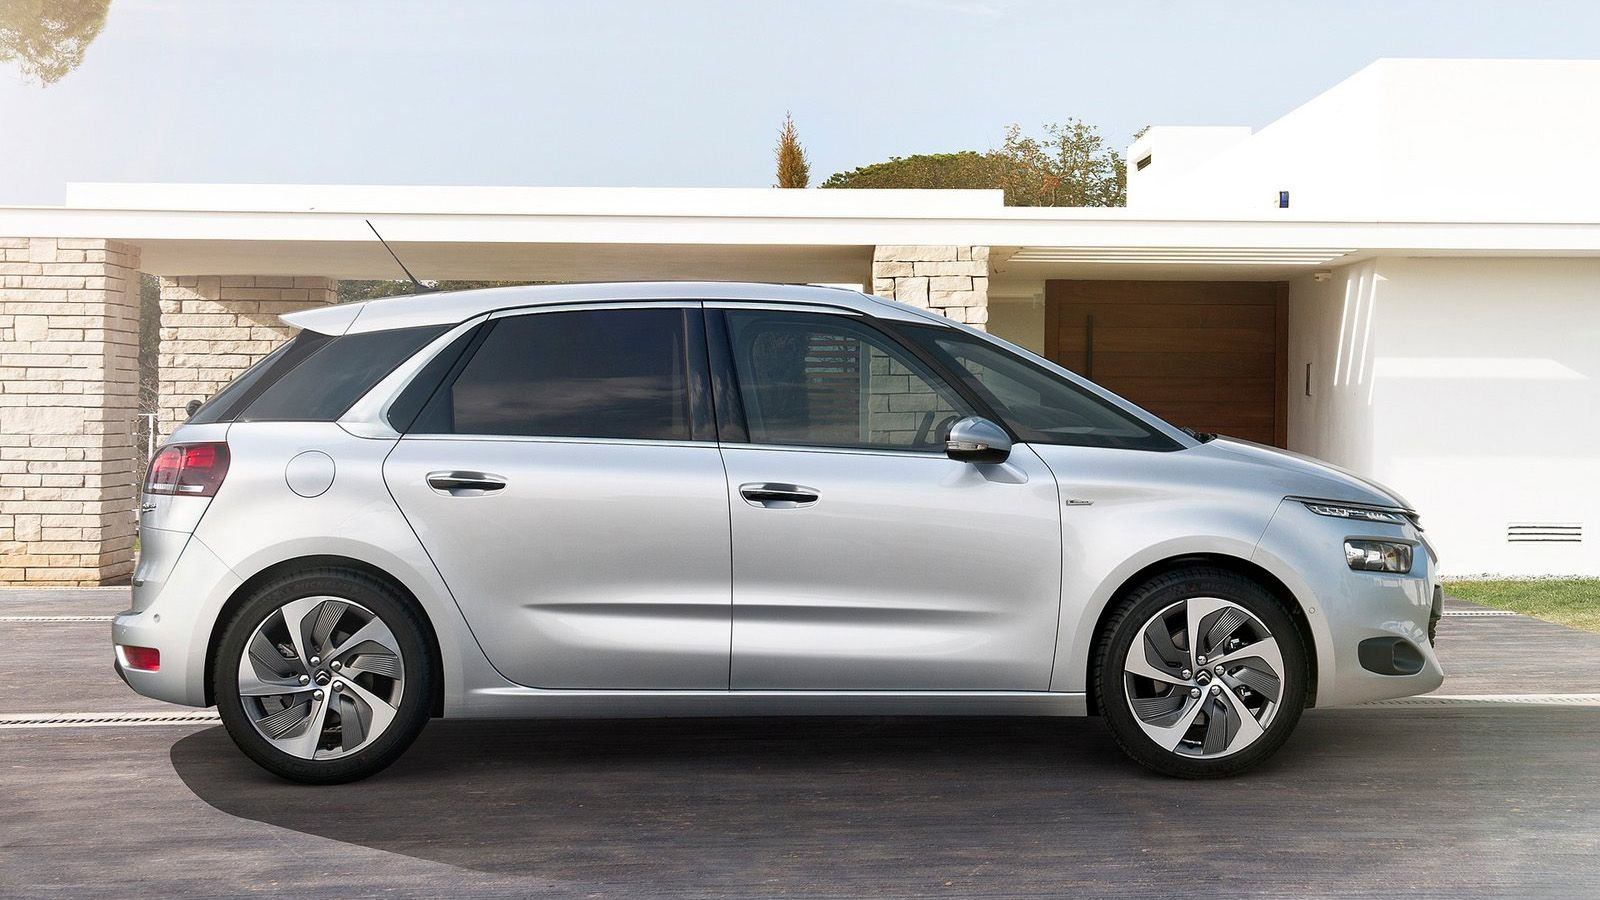 2015 citroen c4 picasso review first drive caradvice. Black Bedroom Furniture Sets. Home Design Ideas